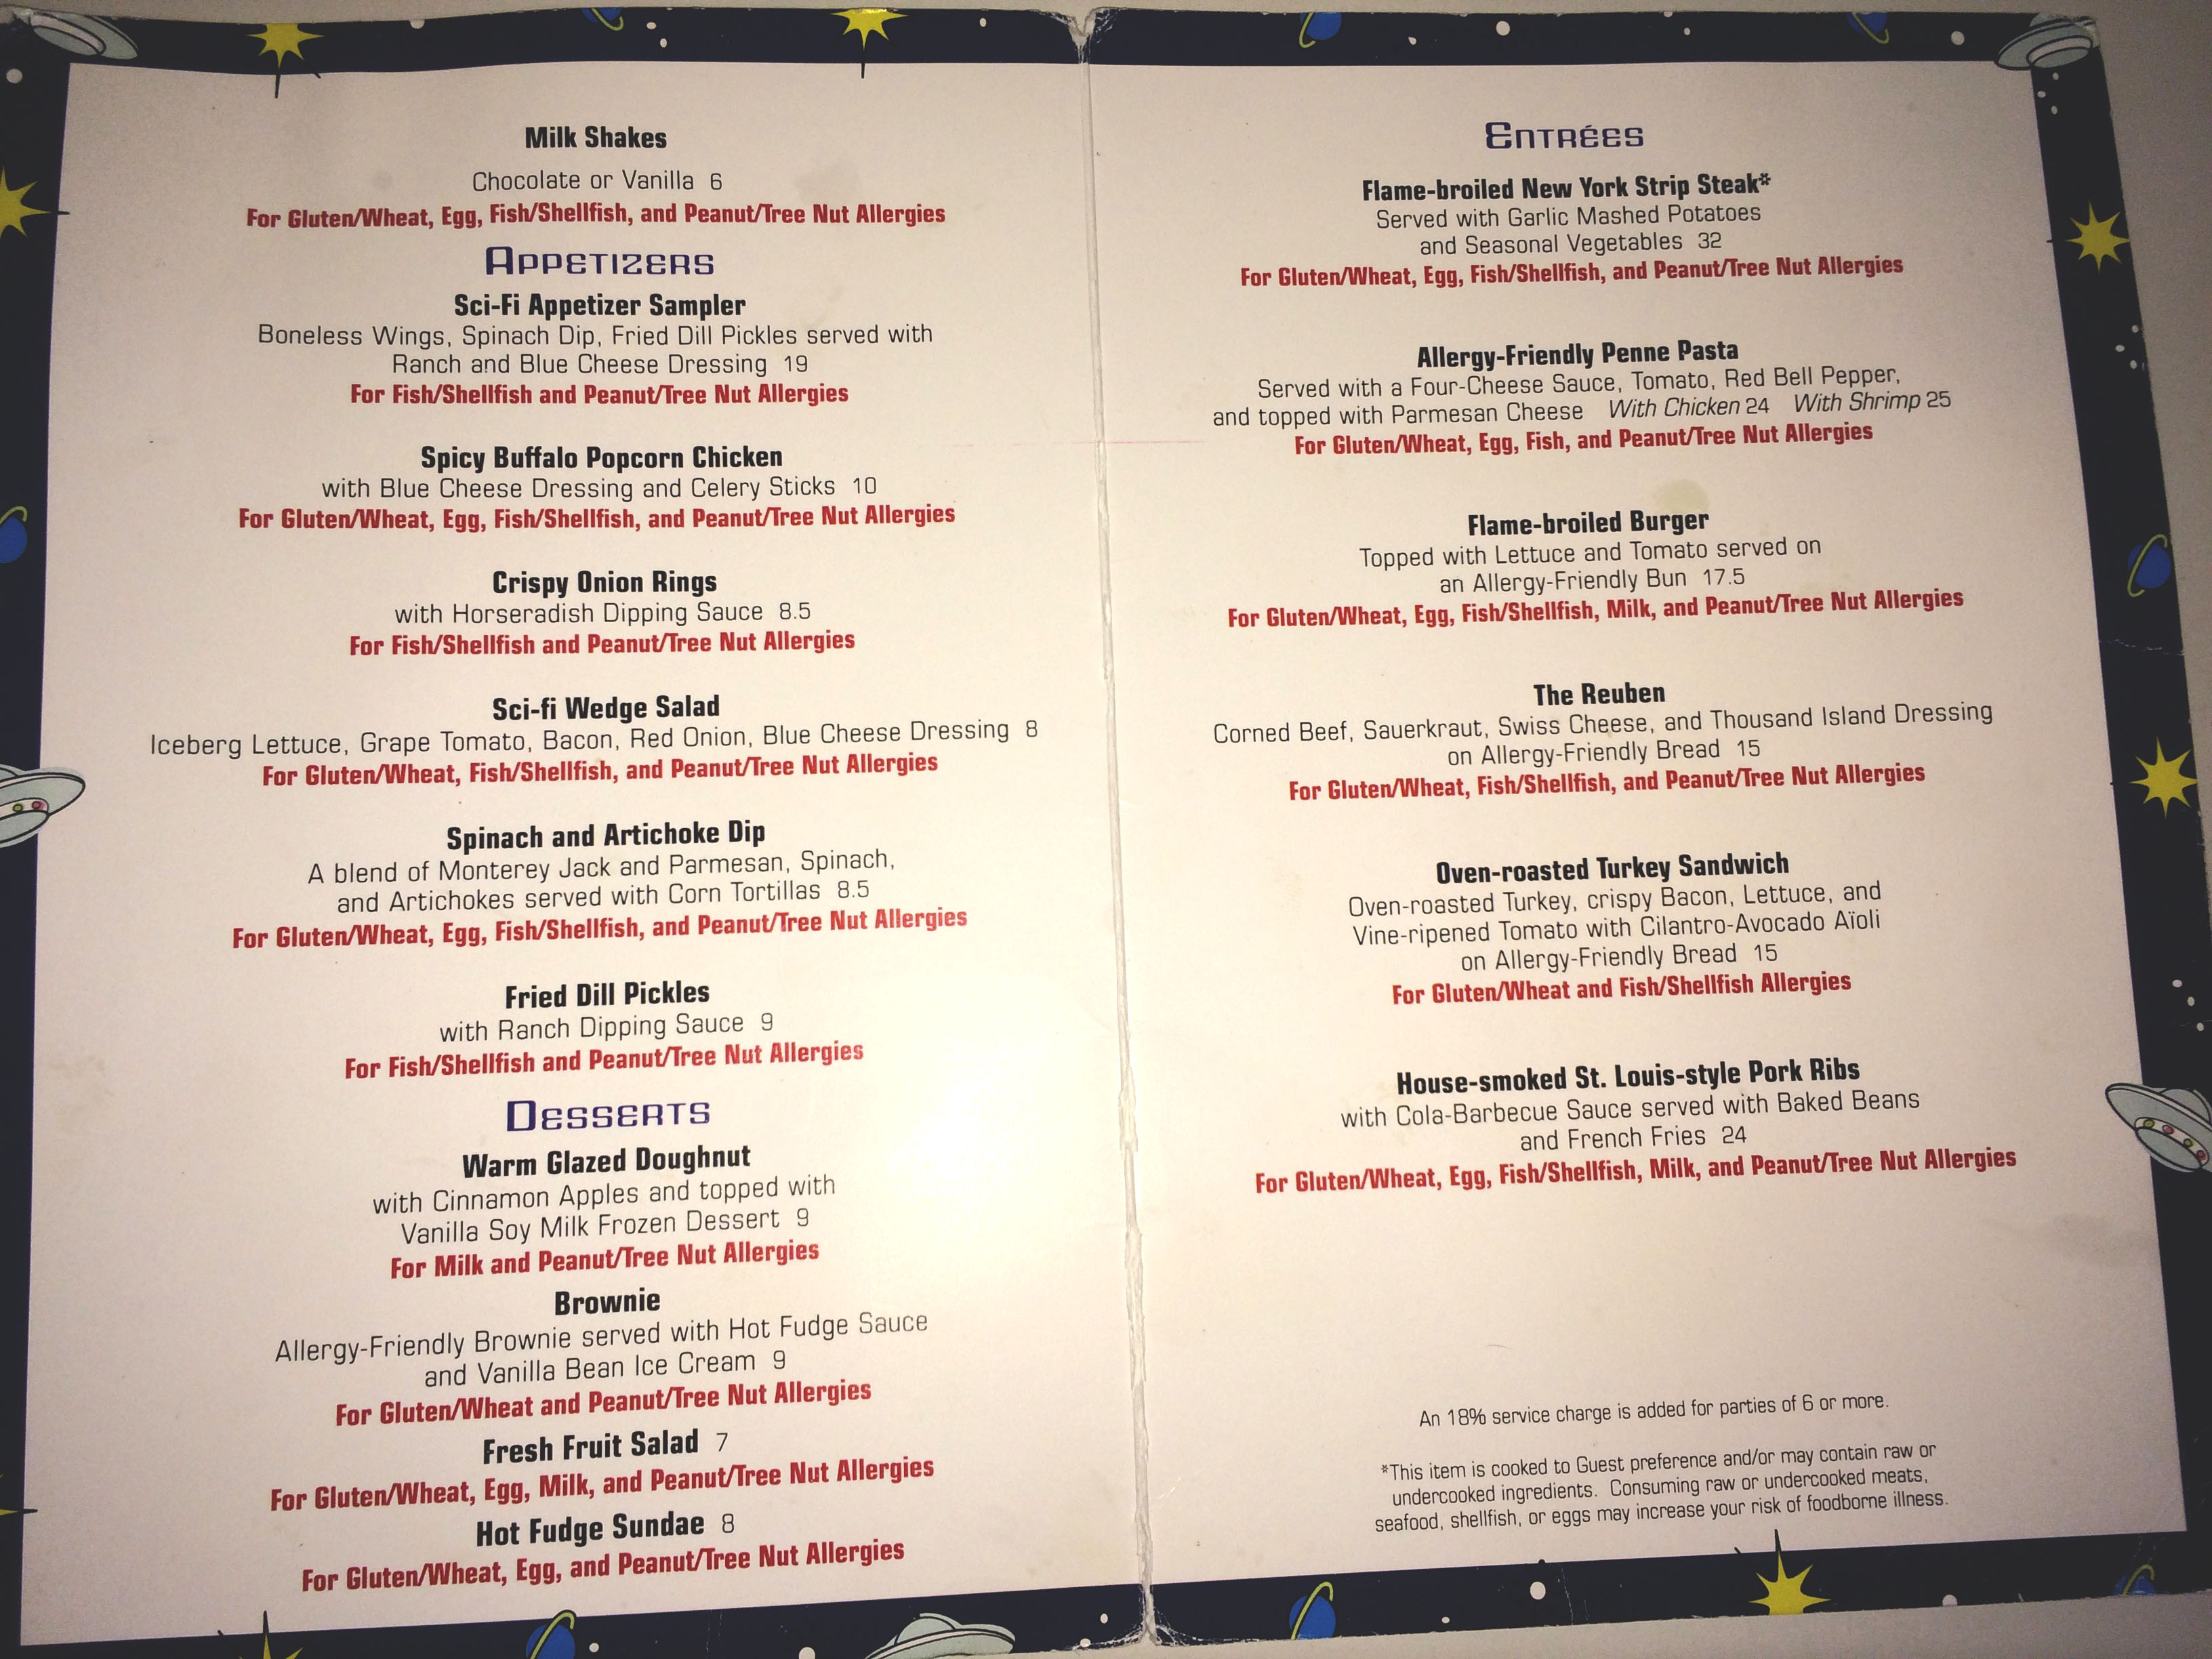 Allergy Menus at Disney World - Everything You Need to Know